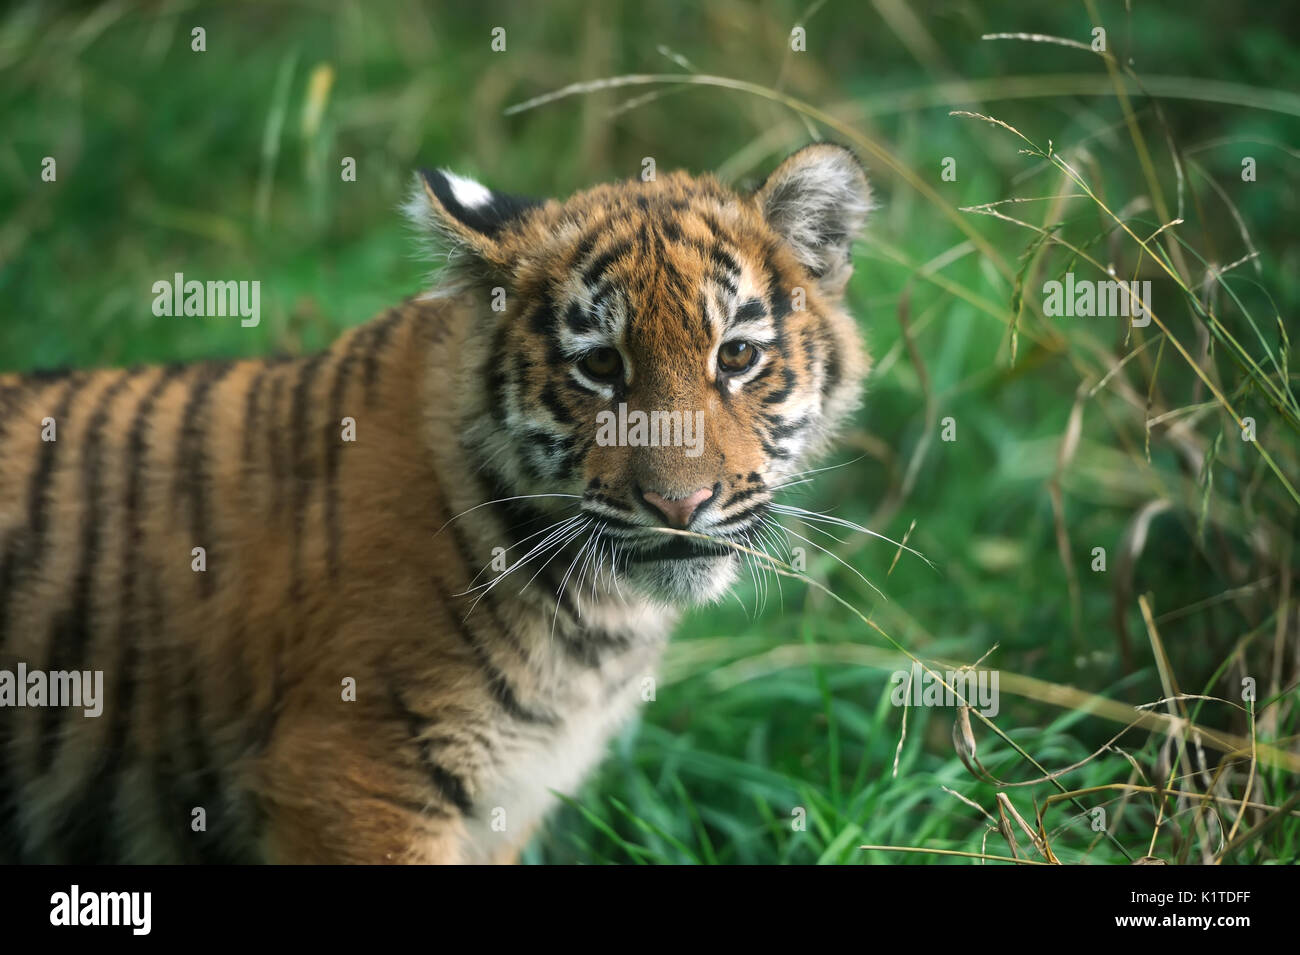 White Tiger Cub Wildlife Stock Photos & White Tiger Cub ...